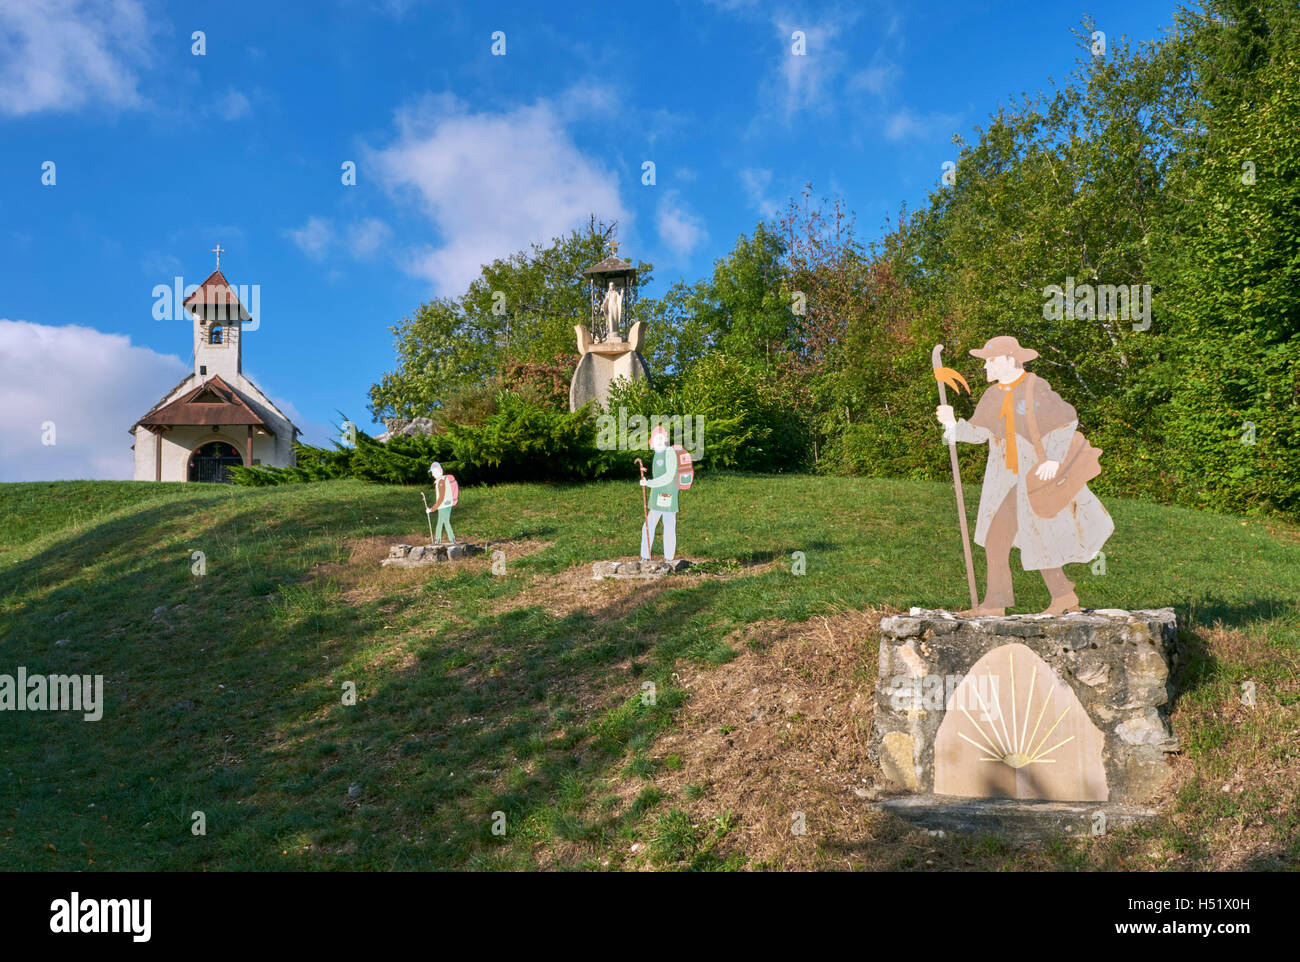 Pilgrim figures by Chapelle Saint-Romain on the Camino de Santiago above Jongieux-le-Haut. Savoie, France. - Stock Image